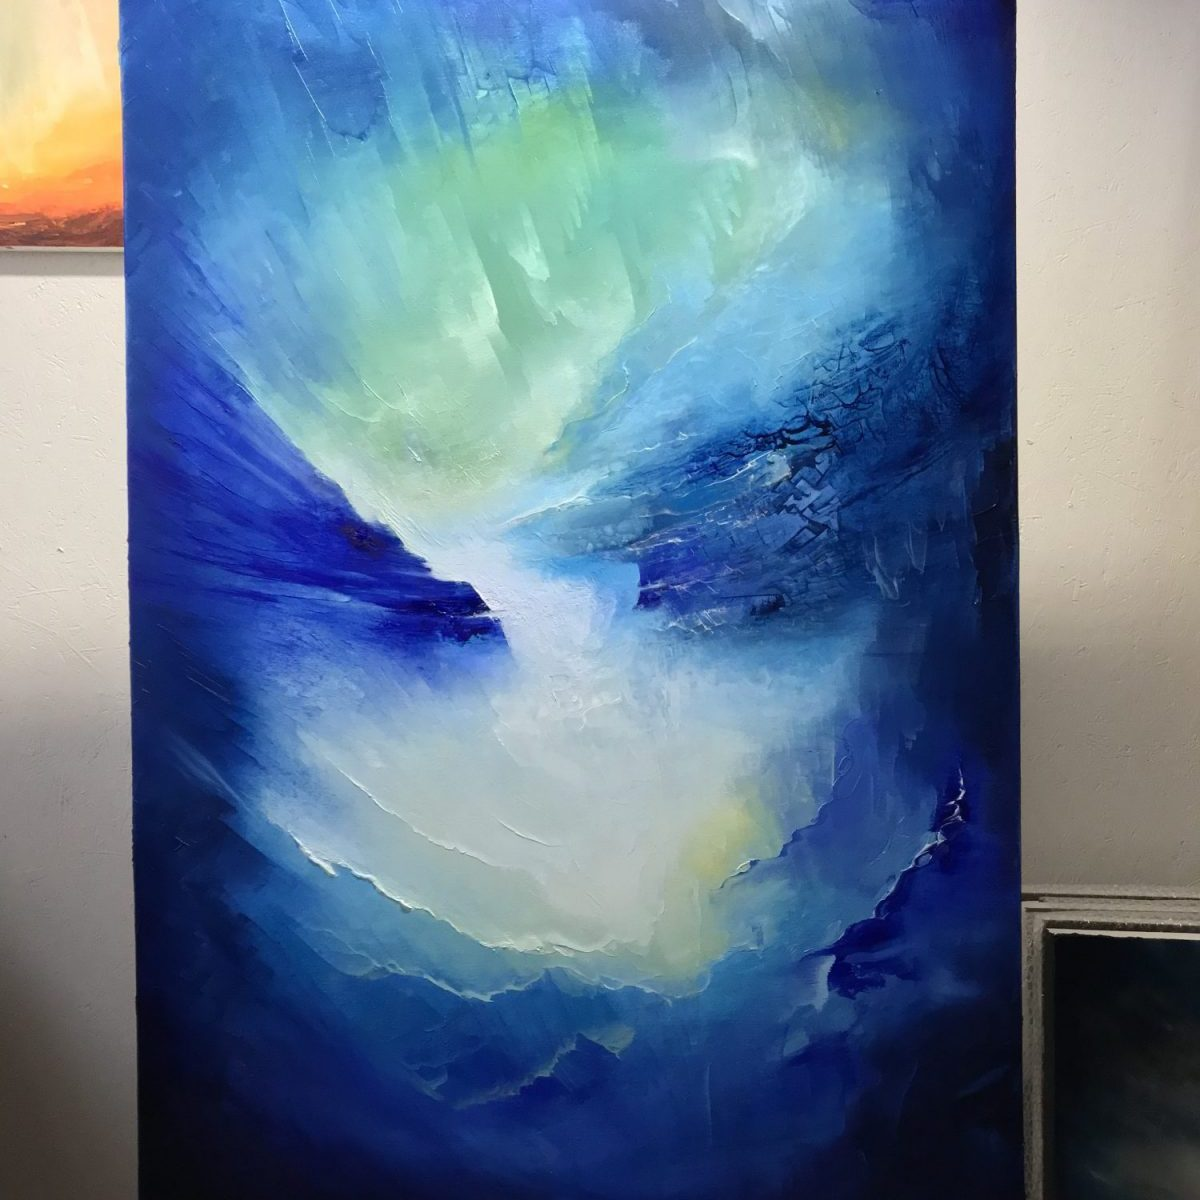 Deep Blue Dream oil painting by Paul Kingsley Squire